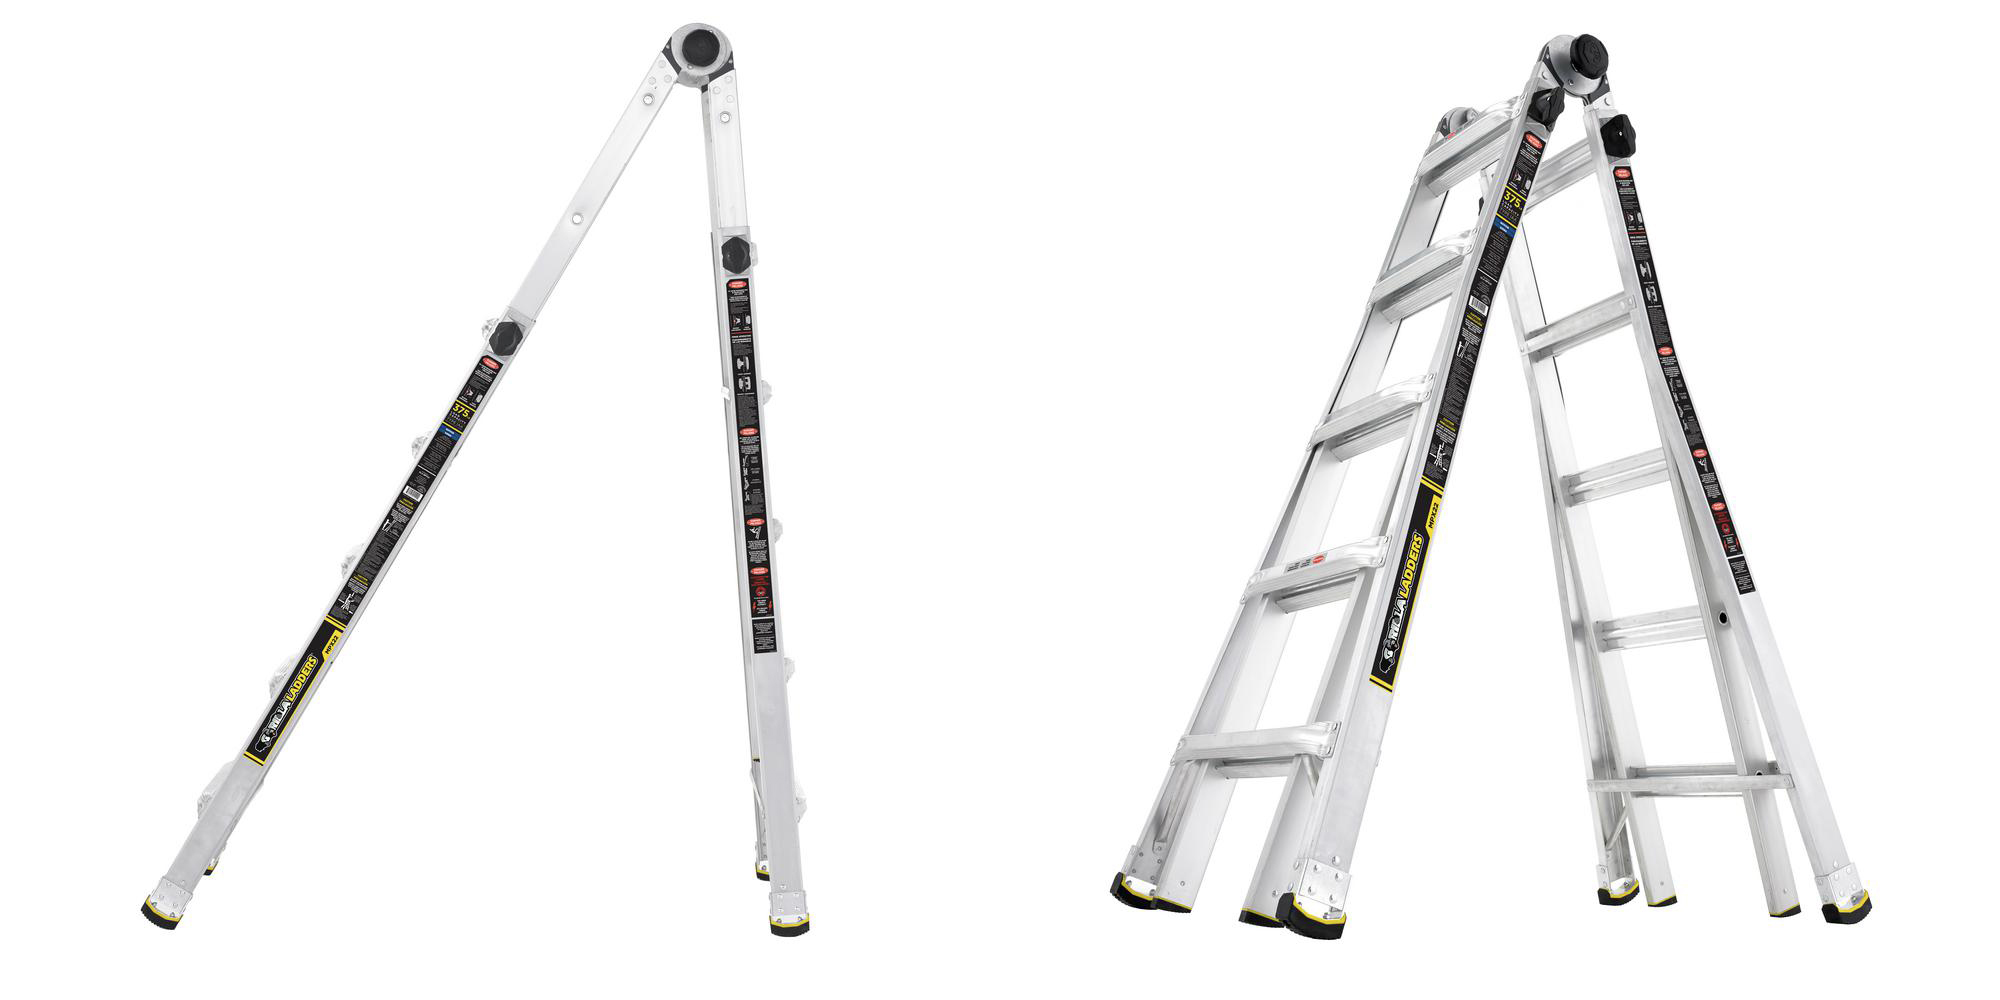 Gorilla Ladders 22-ft. Aluminum Ladder down to $99 in this